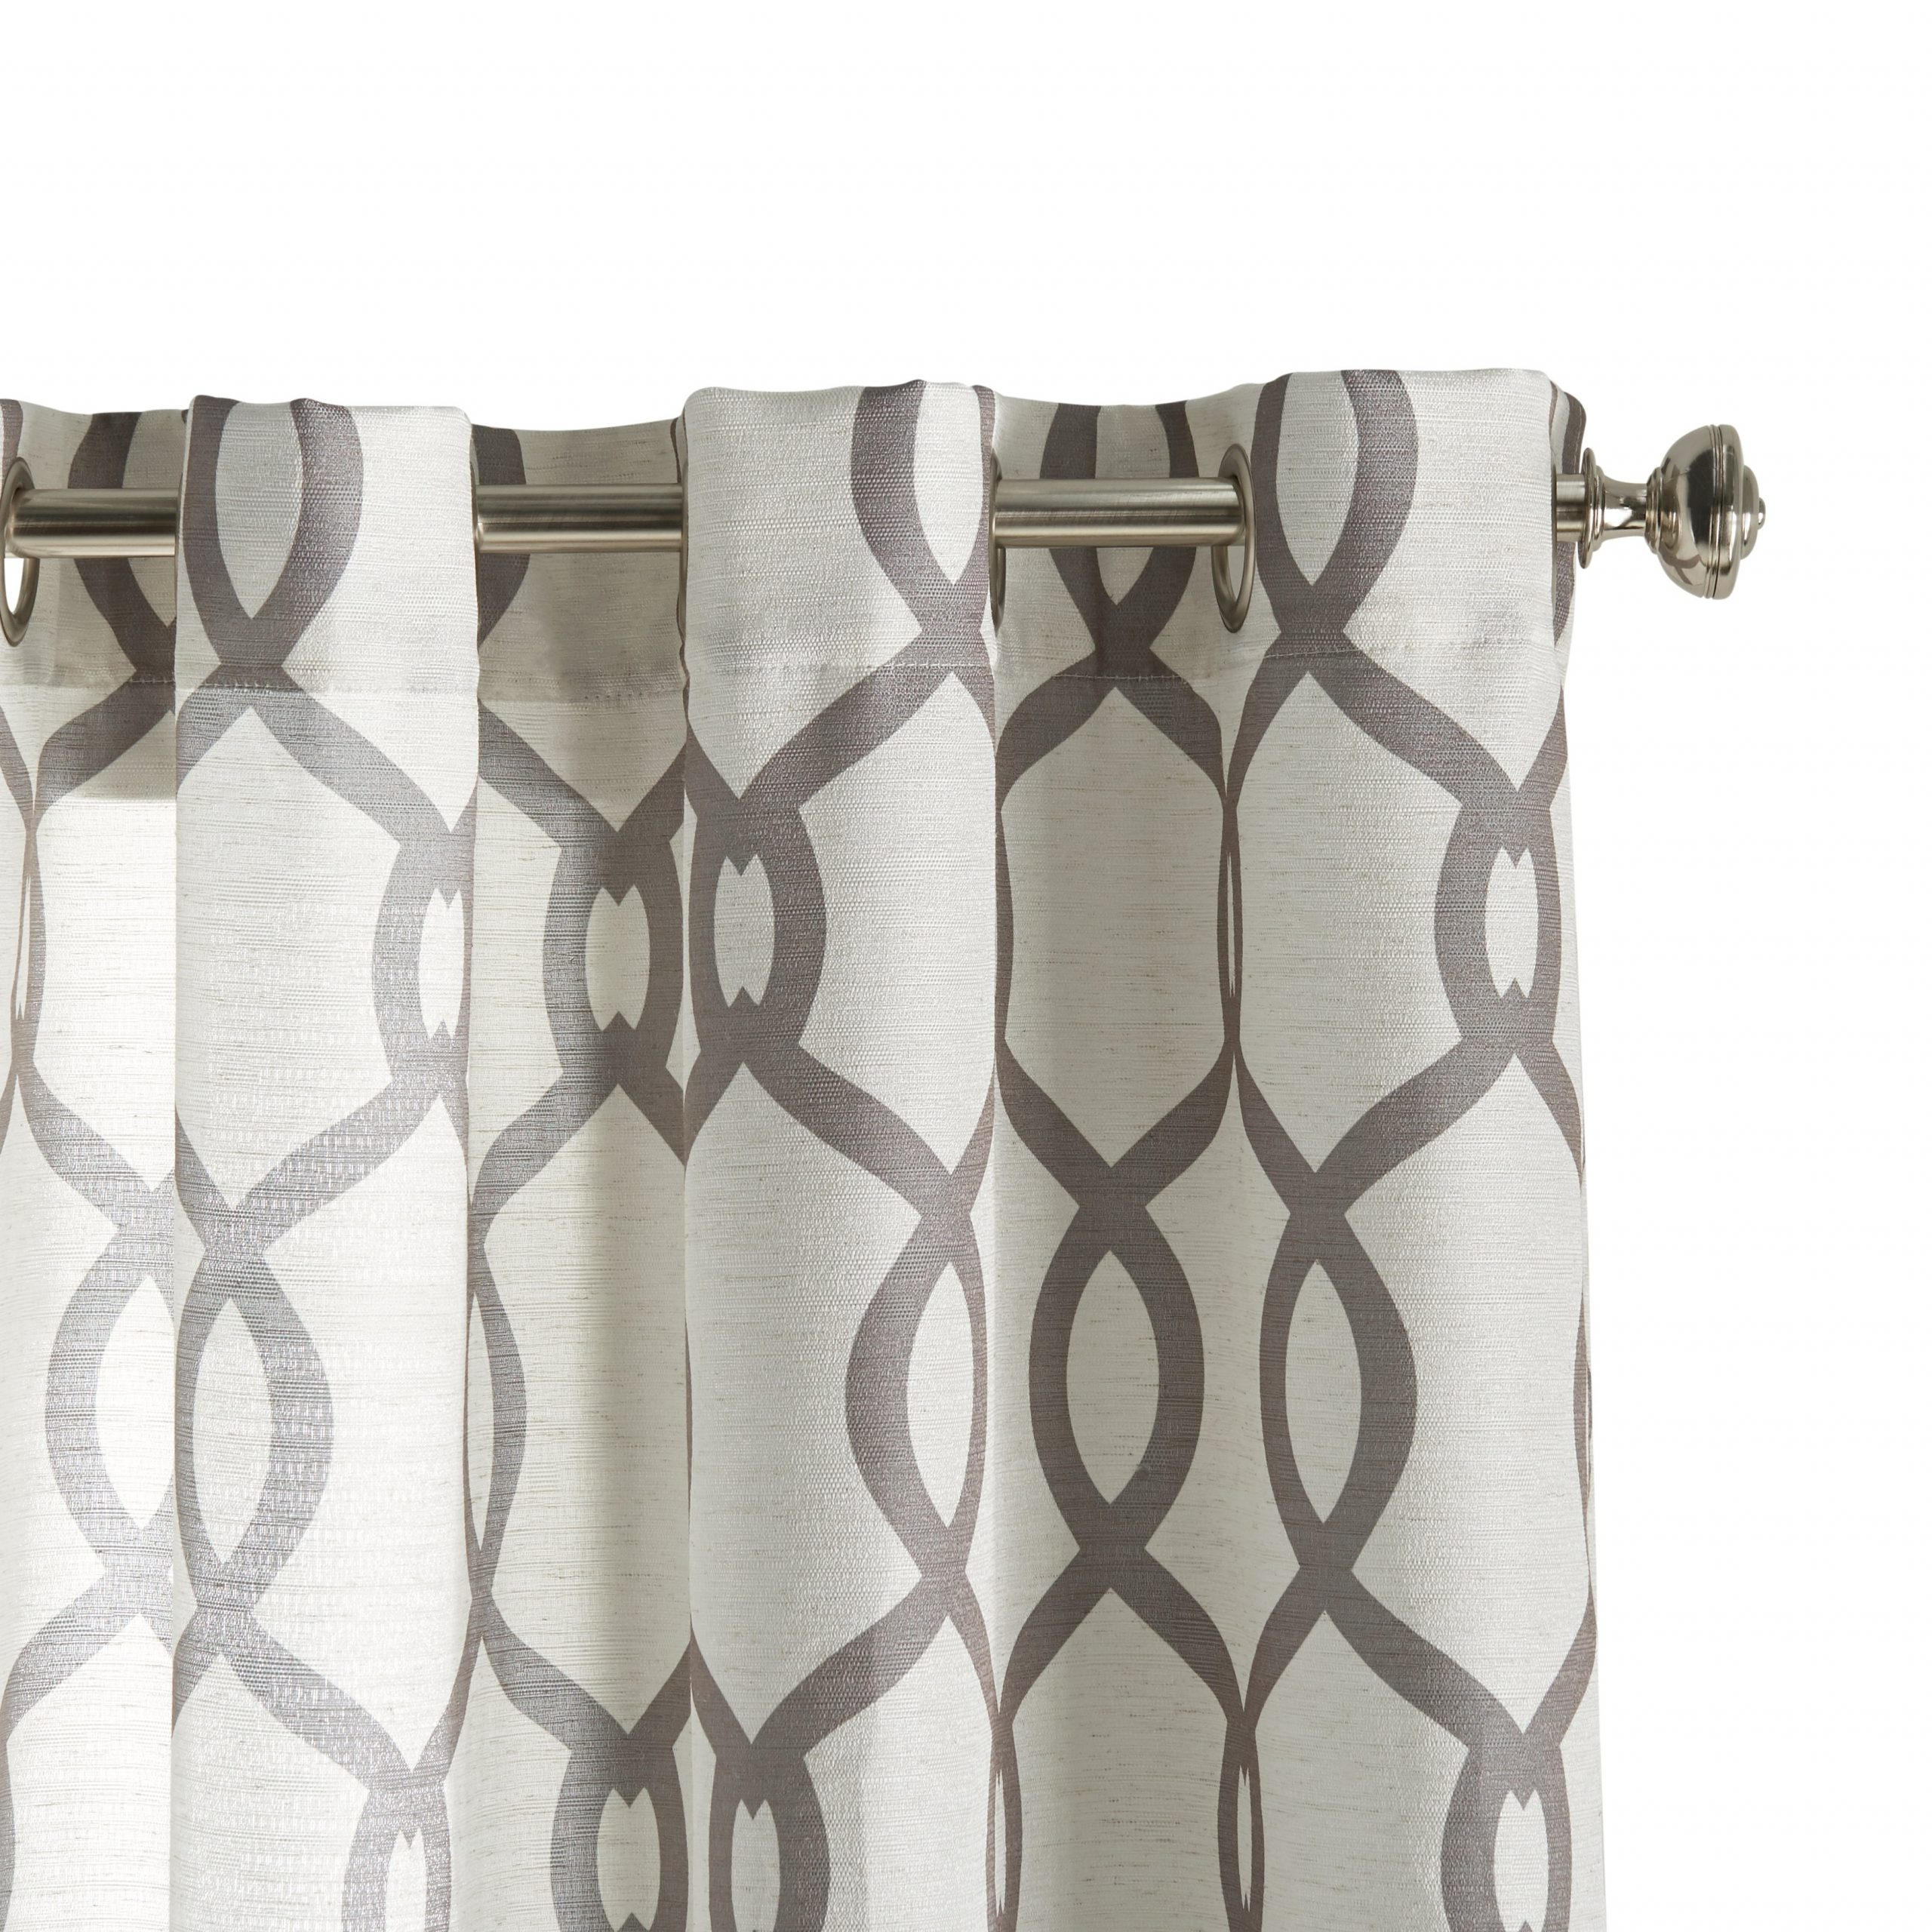 "Well Known Ati Home Kochi Linen Blend Window Grommet Top Curtain Panel Pair 108"" L In Dove Grey (as Is Item) In Kochi Linen Blend Window Grommet Top Curtain Panel Pairs (View 11 of 20)"